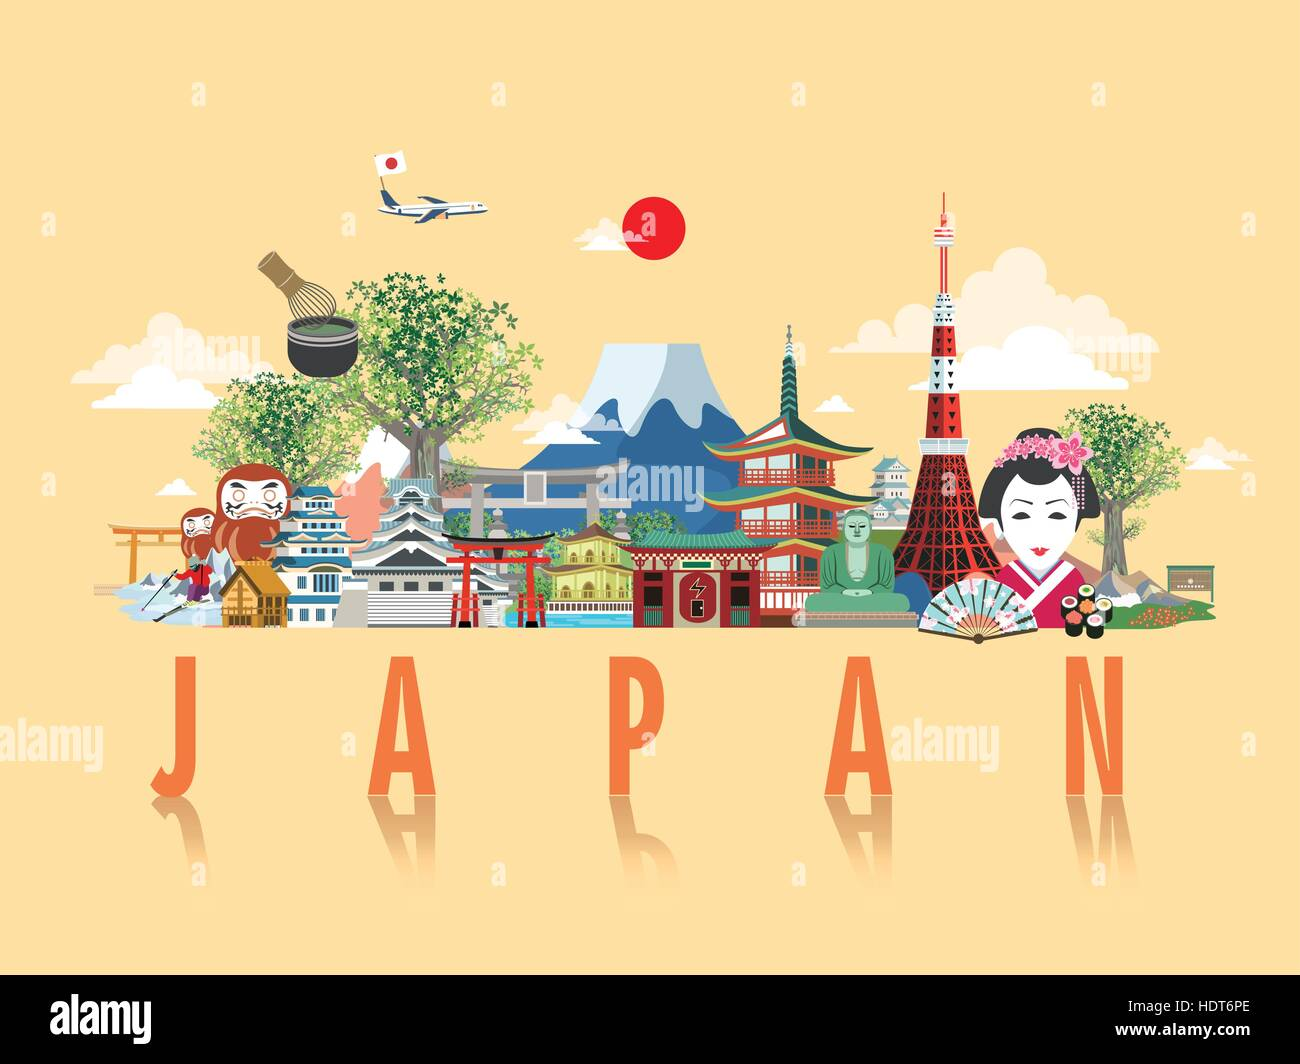 Poster design japan - Stock Vector Wonderful Japan Travel Poster Design In Flat Style